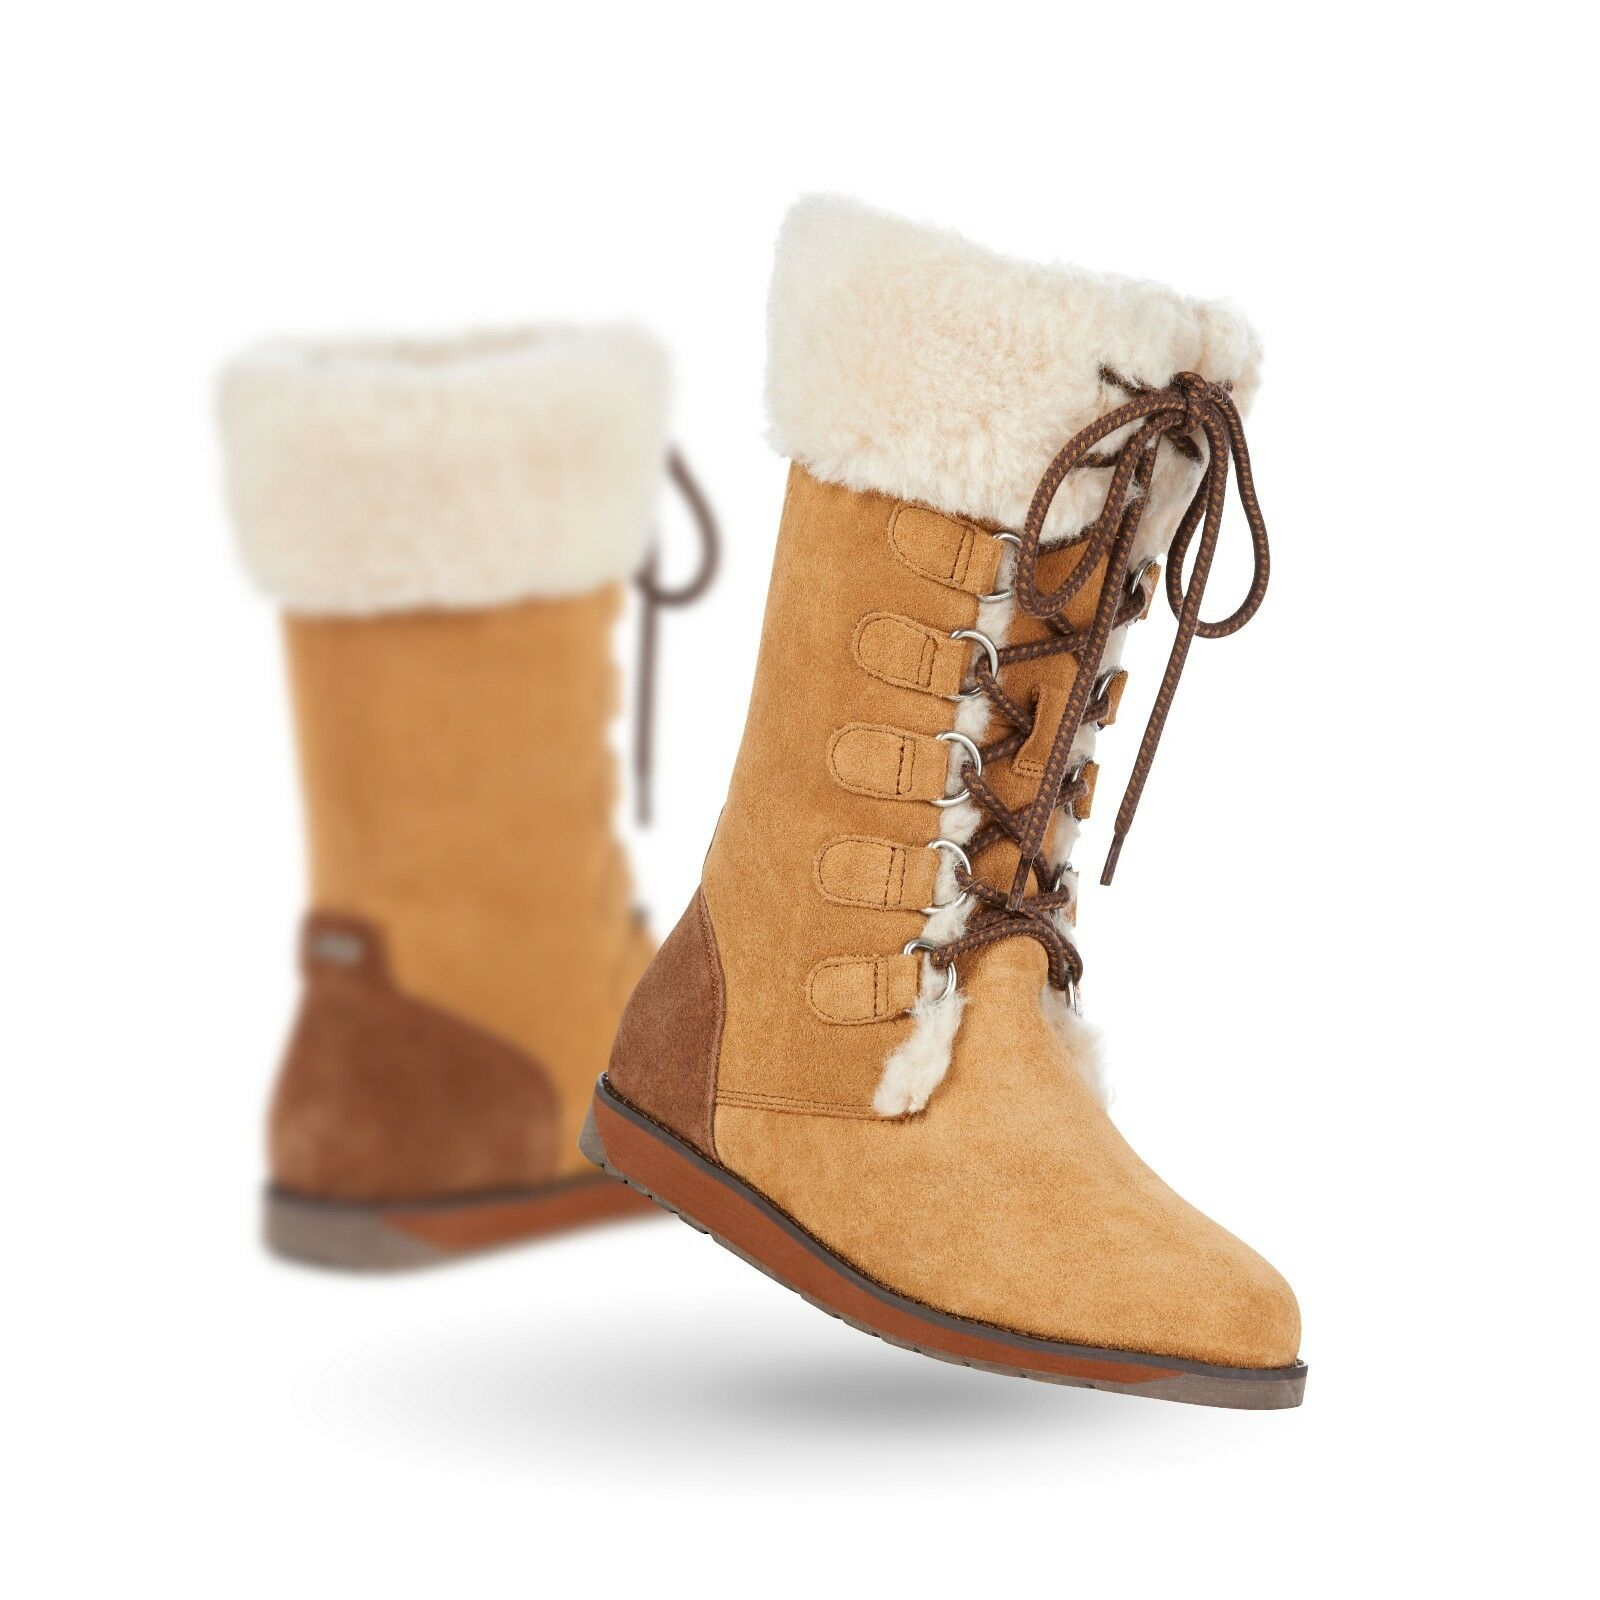 NEW EMU AUSTRALIA WOMENS FEATHERWOOD SUEDE & WOOL LACE UP BOOT CHESTNUT SIZE 6